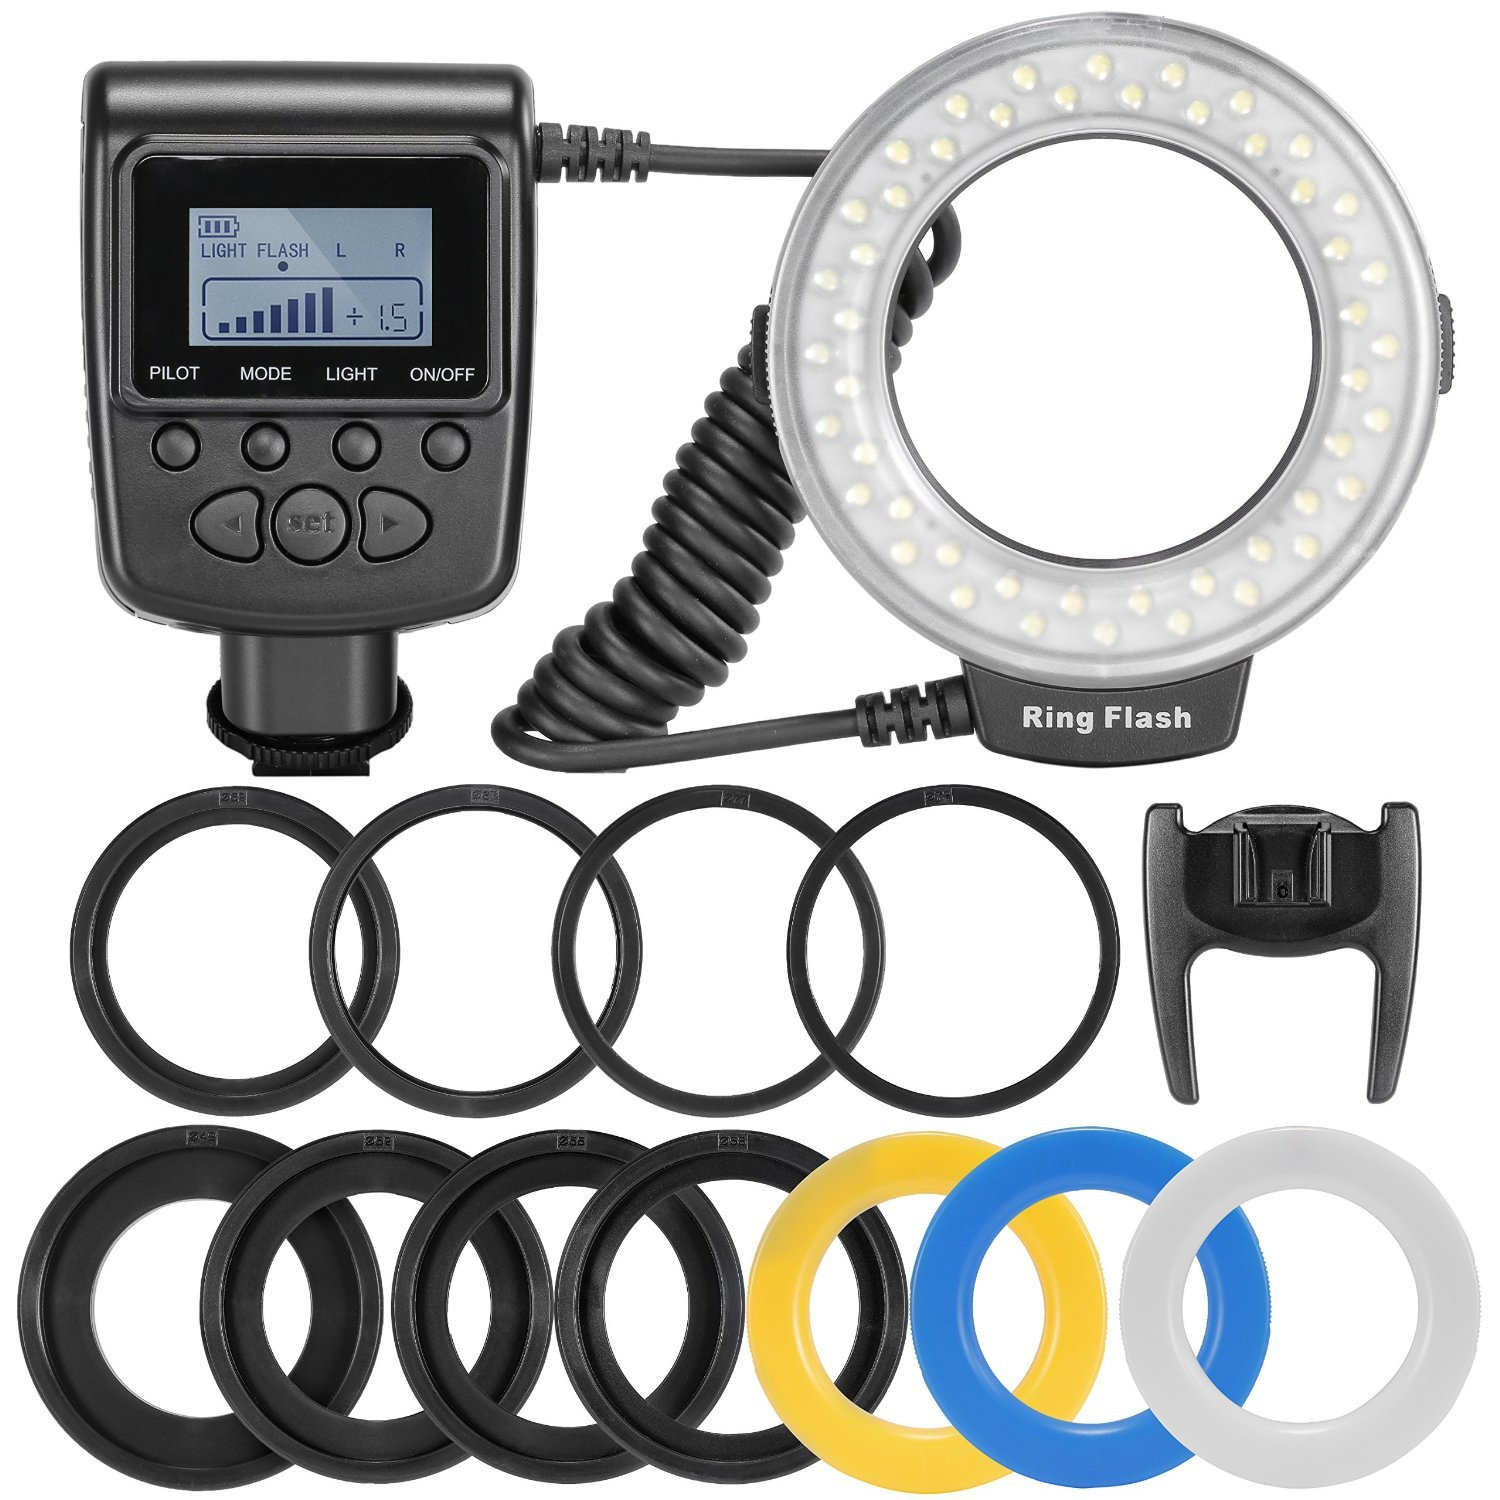 MegaPower 48 Macro LED Ring Flash Light Includes 4 Diffusers (Clear, Warming, Blue, White) For Canon, Nikon, Panasonic, Olympus, Pentax SLR Cameras (Will Fit 49, 52, 55, 58, 62, 67, 72, 77mm Lenses) Canon Digital EOS Rebel SL1 (100D), T5i (700D) DIGIPARTS